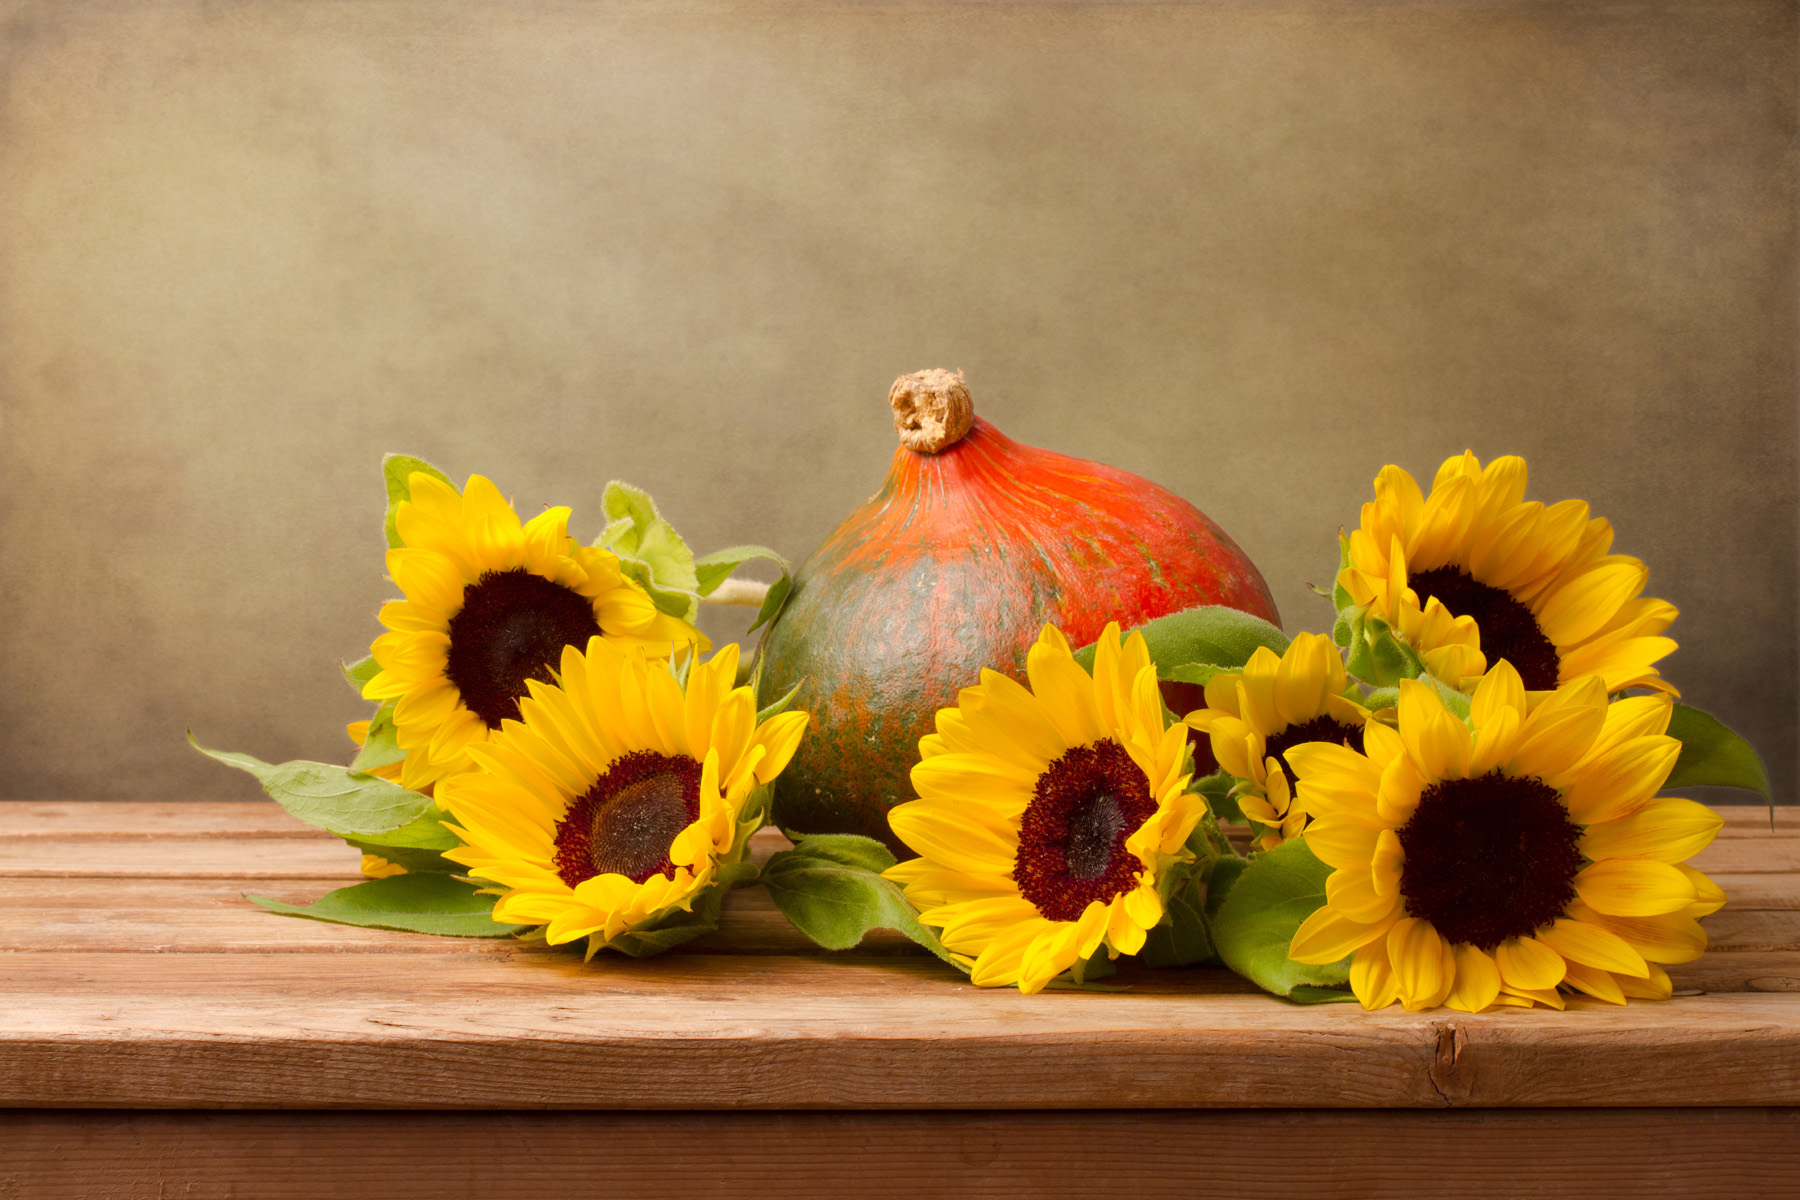 Table of sunflowers and squash 51805